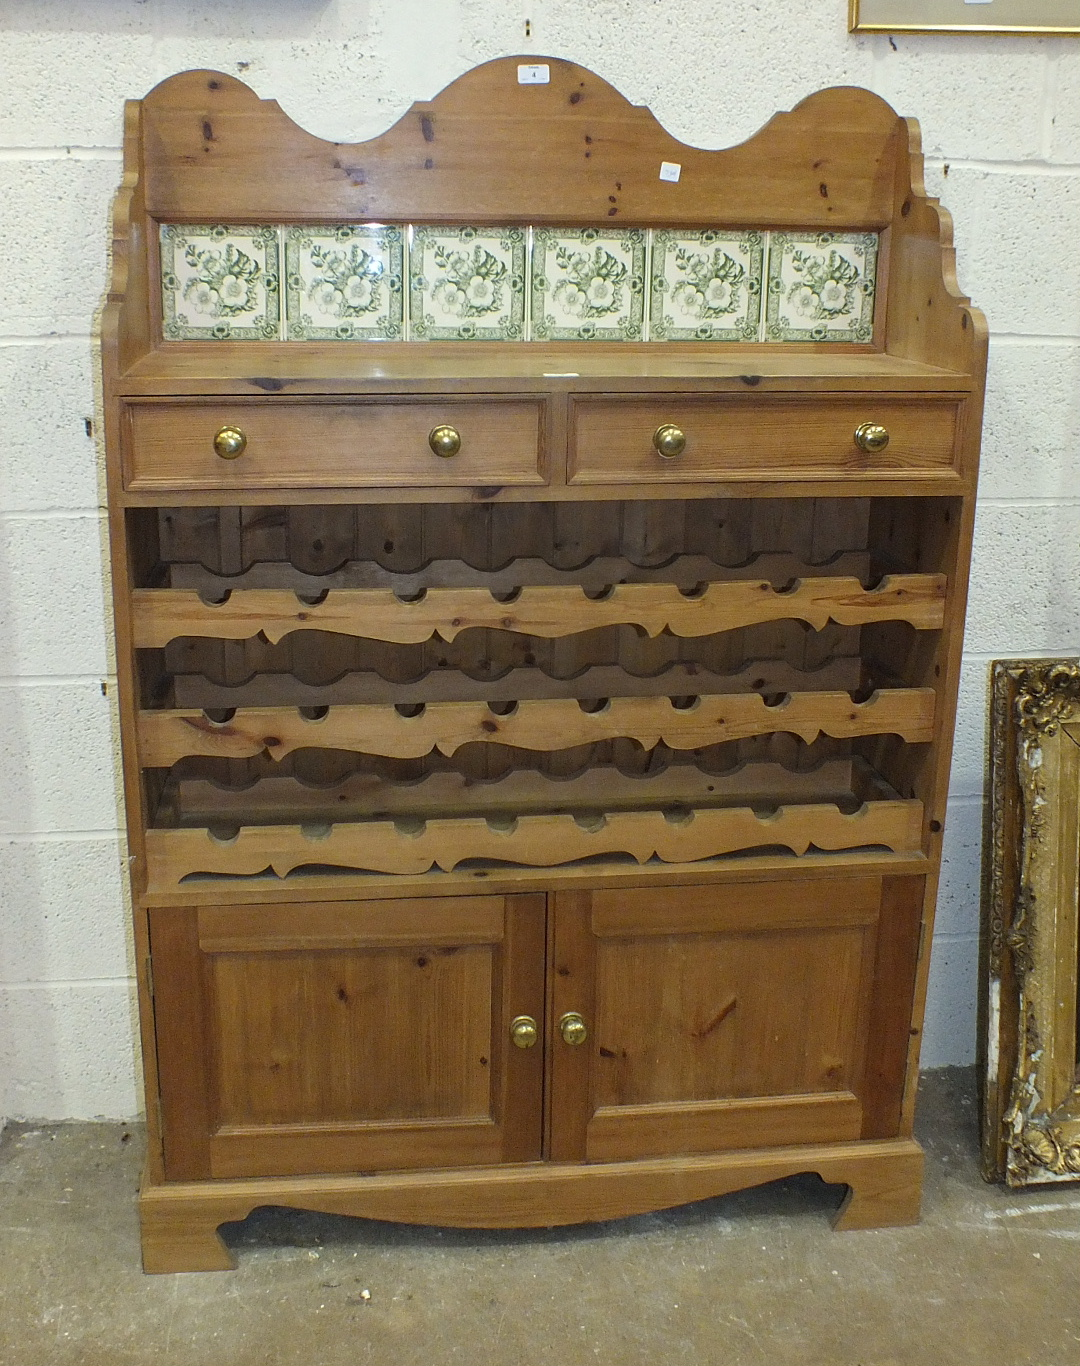 A pine low dresser, the tiled back and shelf above two drawers, three bottle racks and a pair of